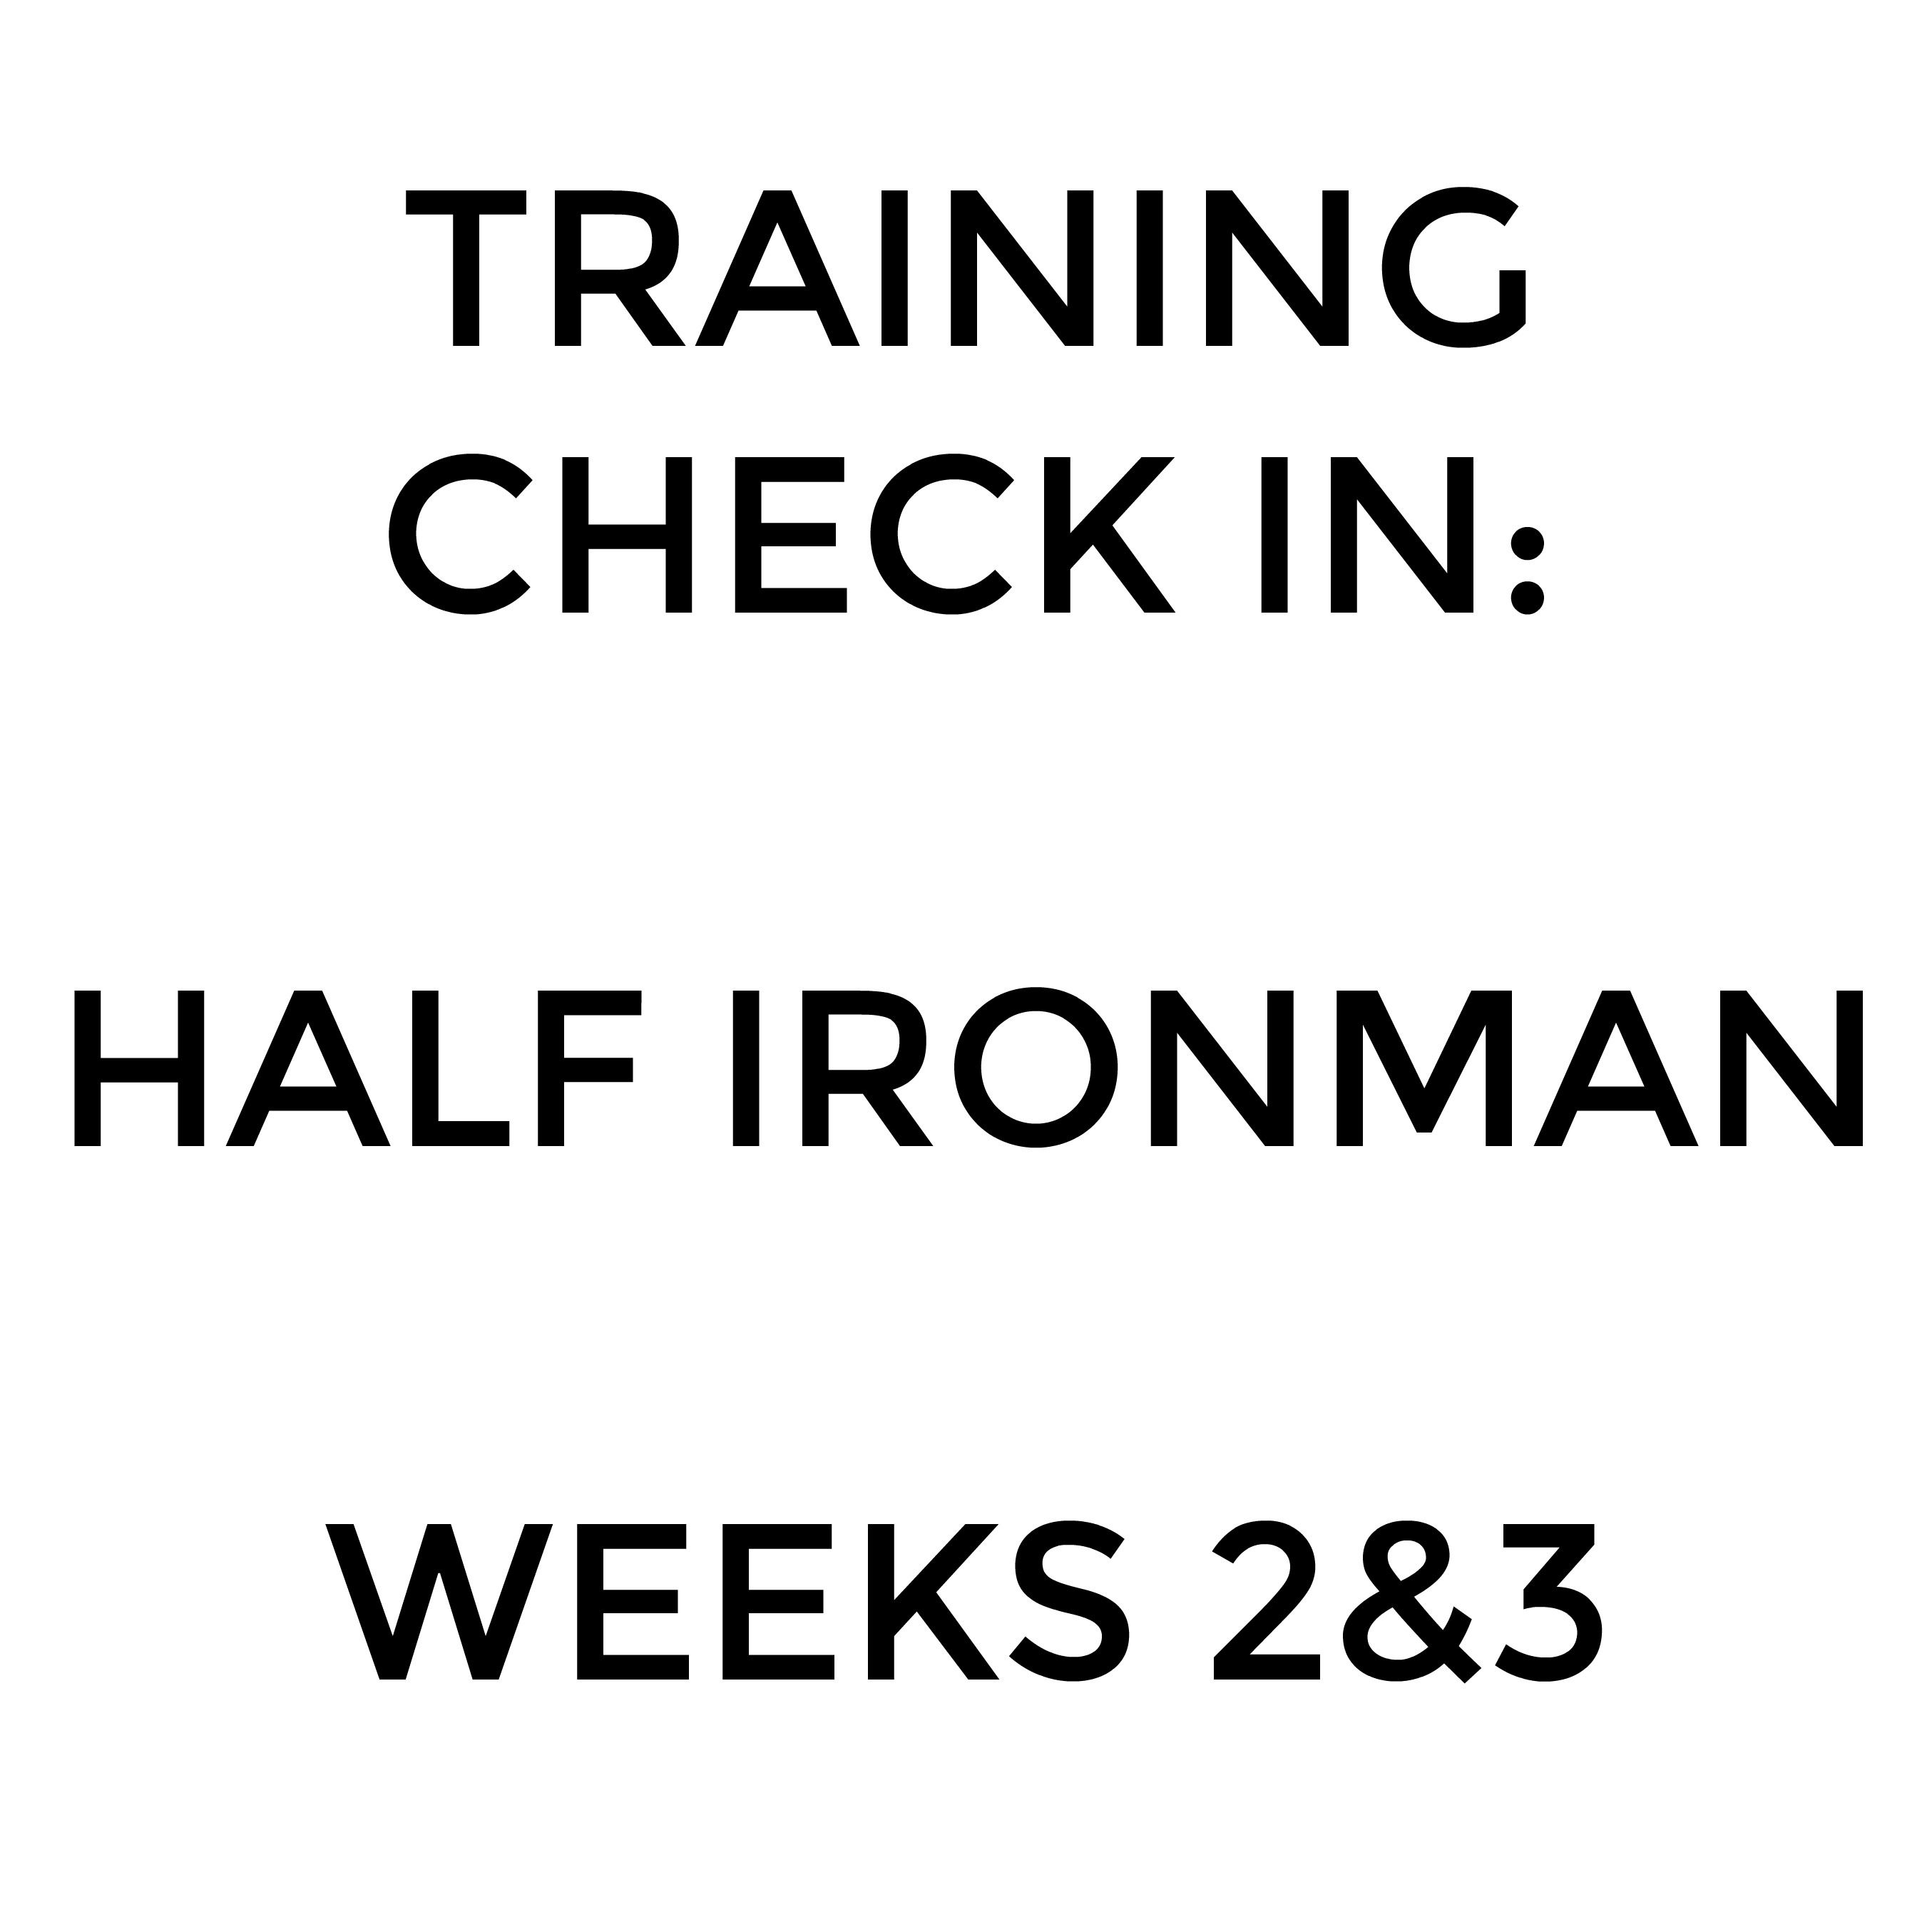 Training Check In: Half Ironman Weeks 2-3